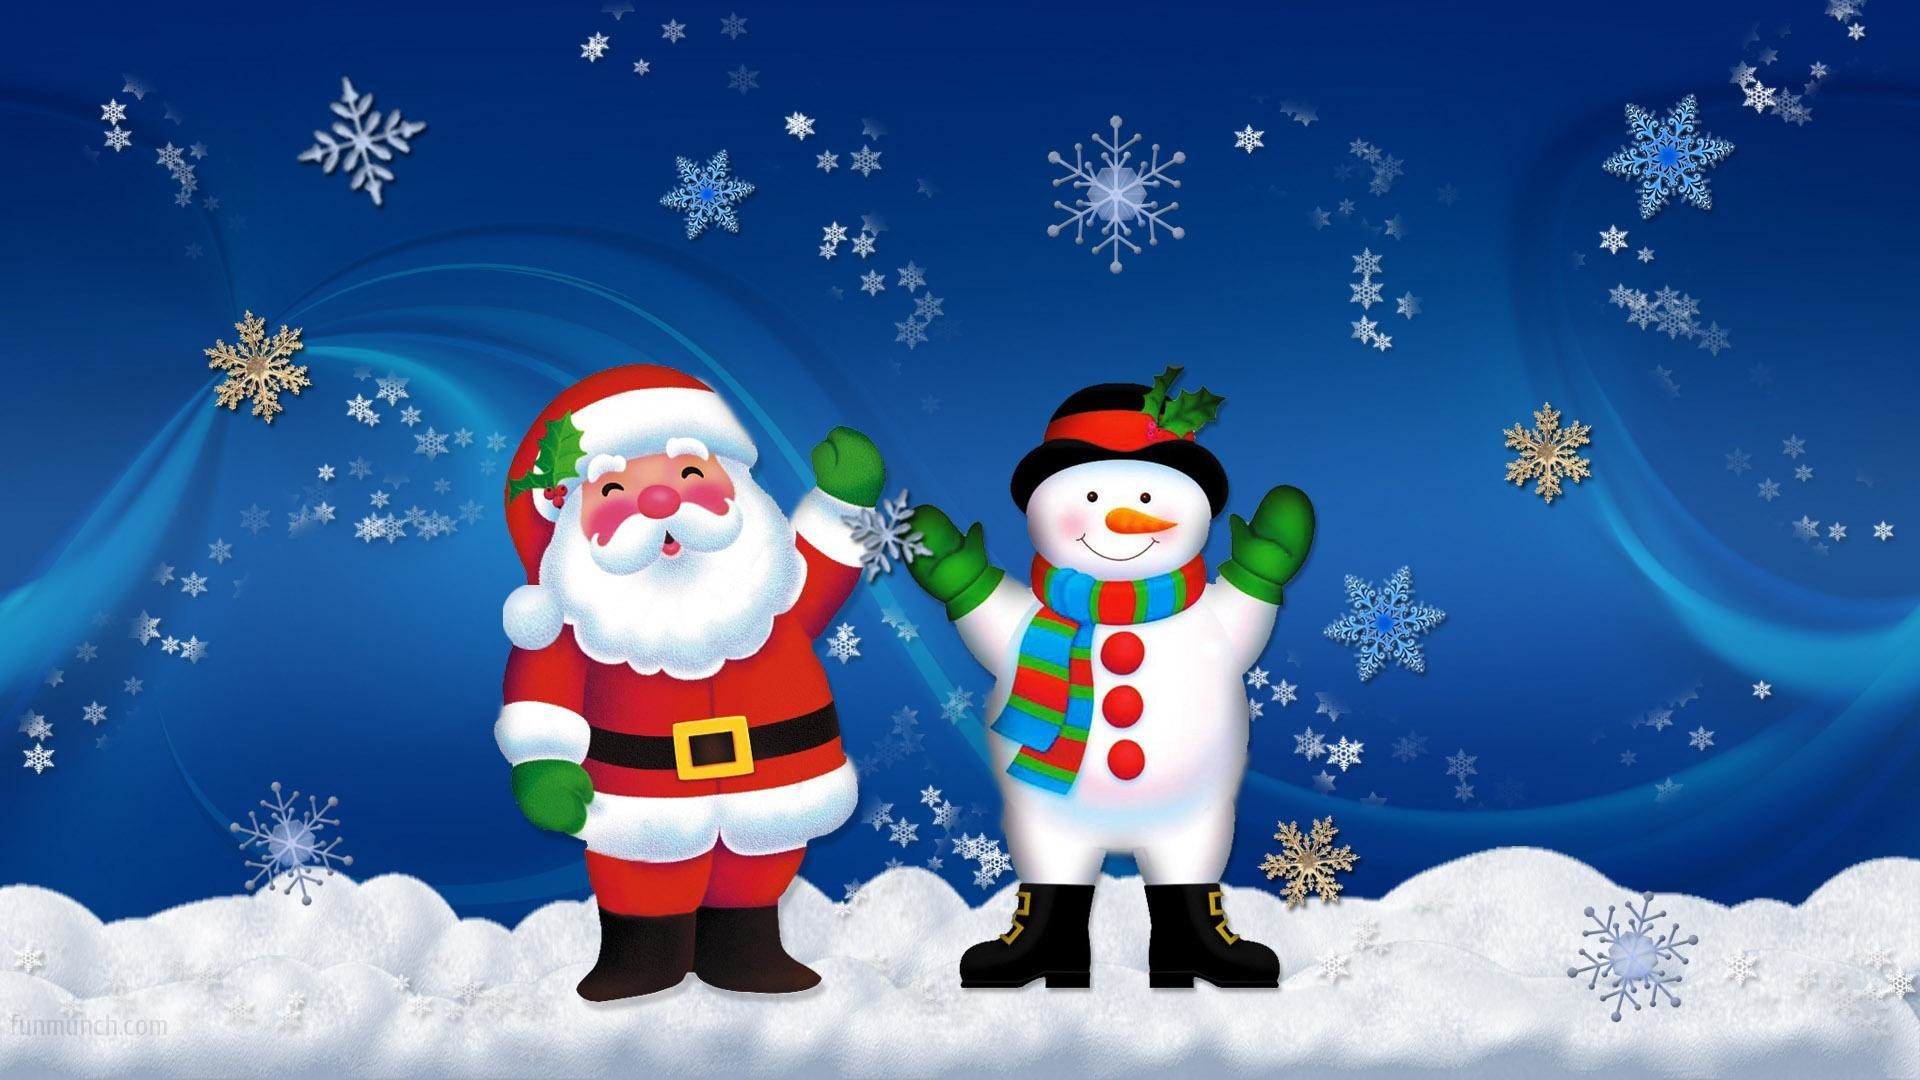 Best Colorful Christmas Wallpapers (2)